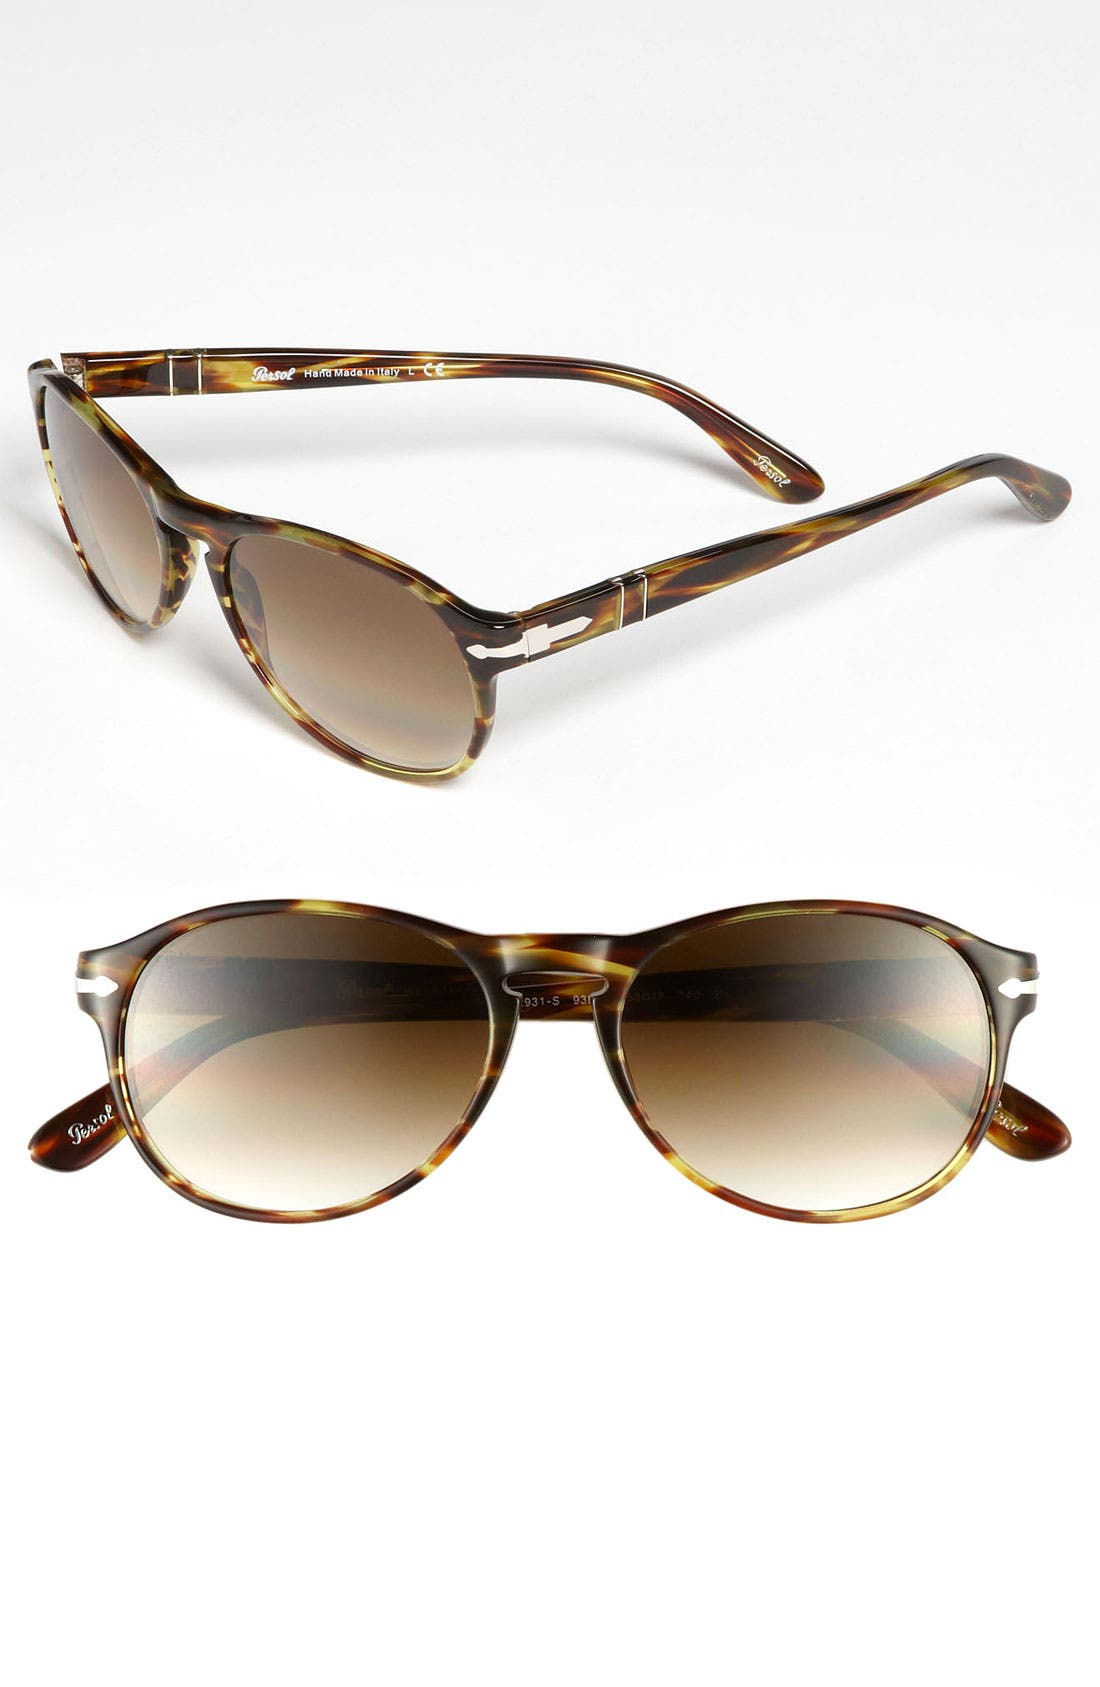 Main Image - Persol 55m Aviator Sunglasses